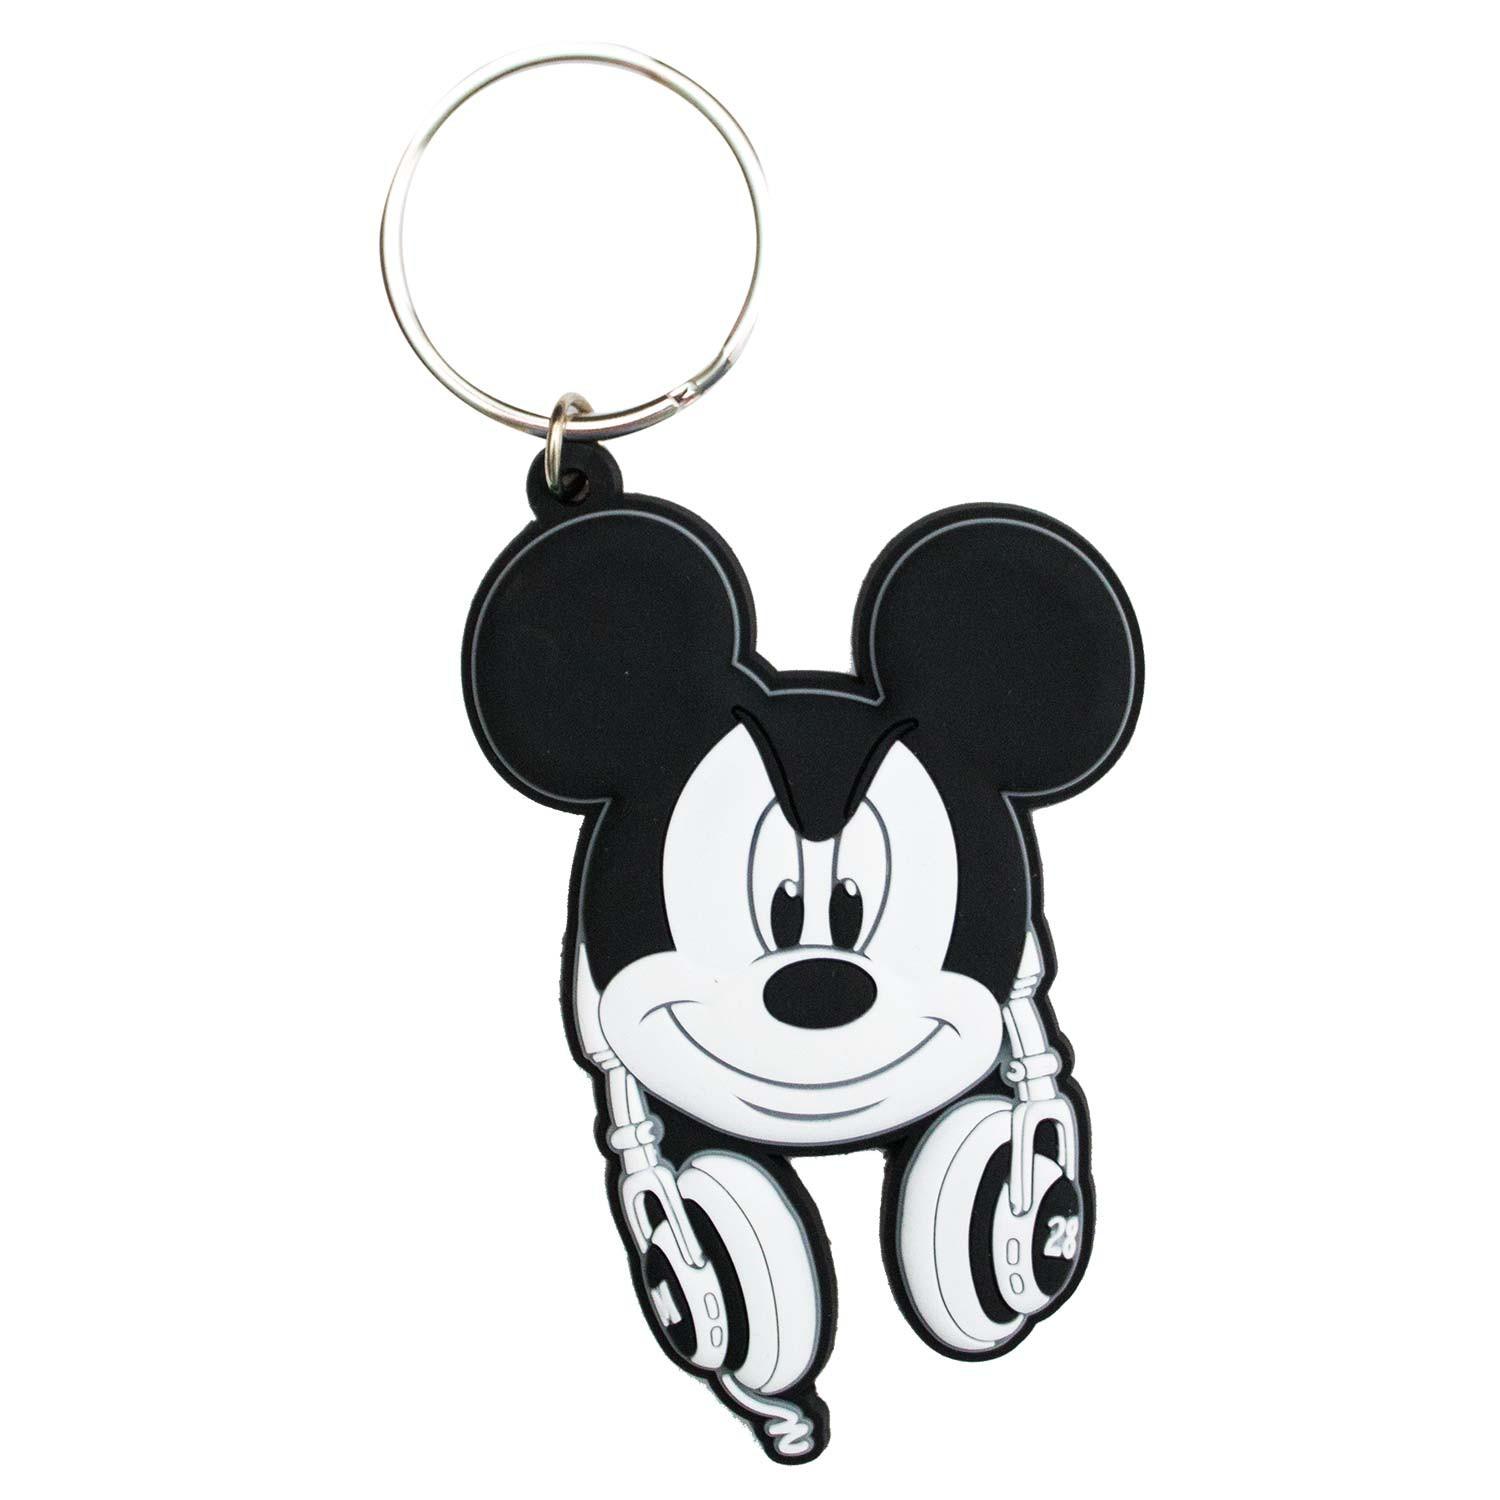 Mickey Mouse Rubber Headphones Keychain